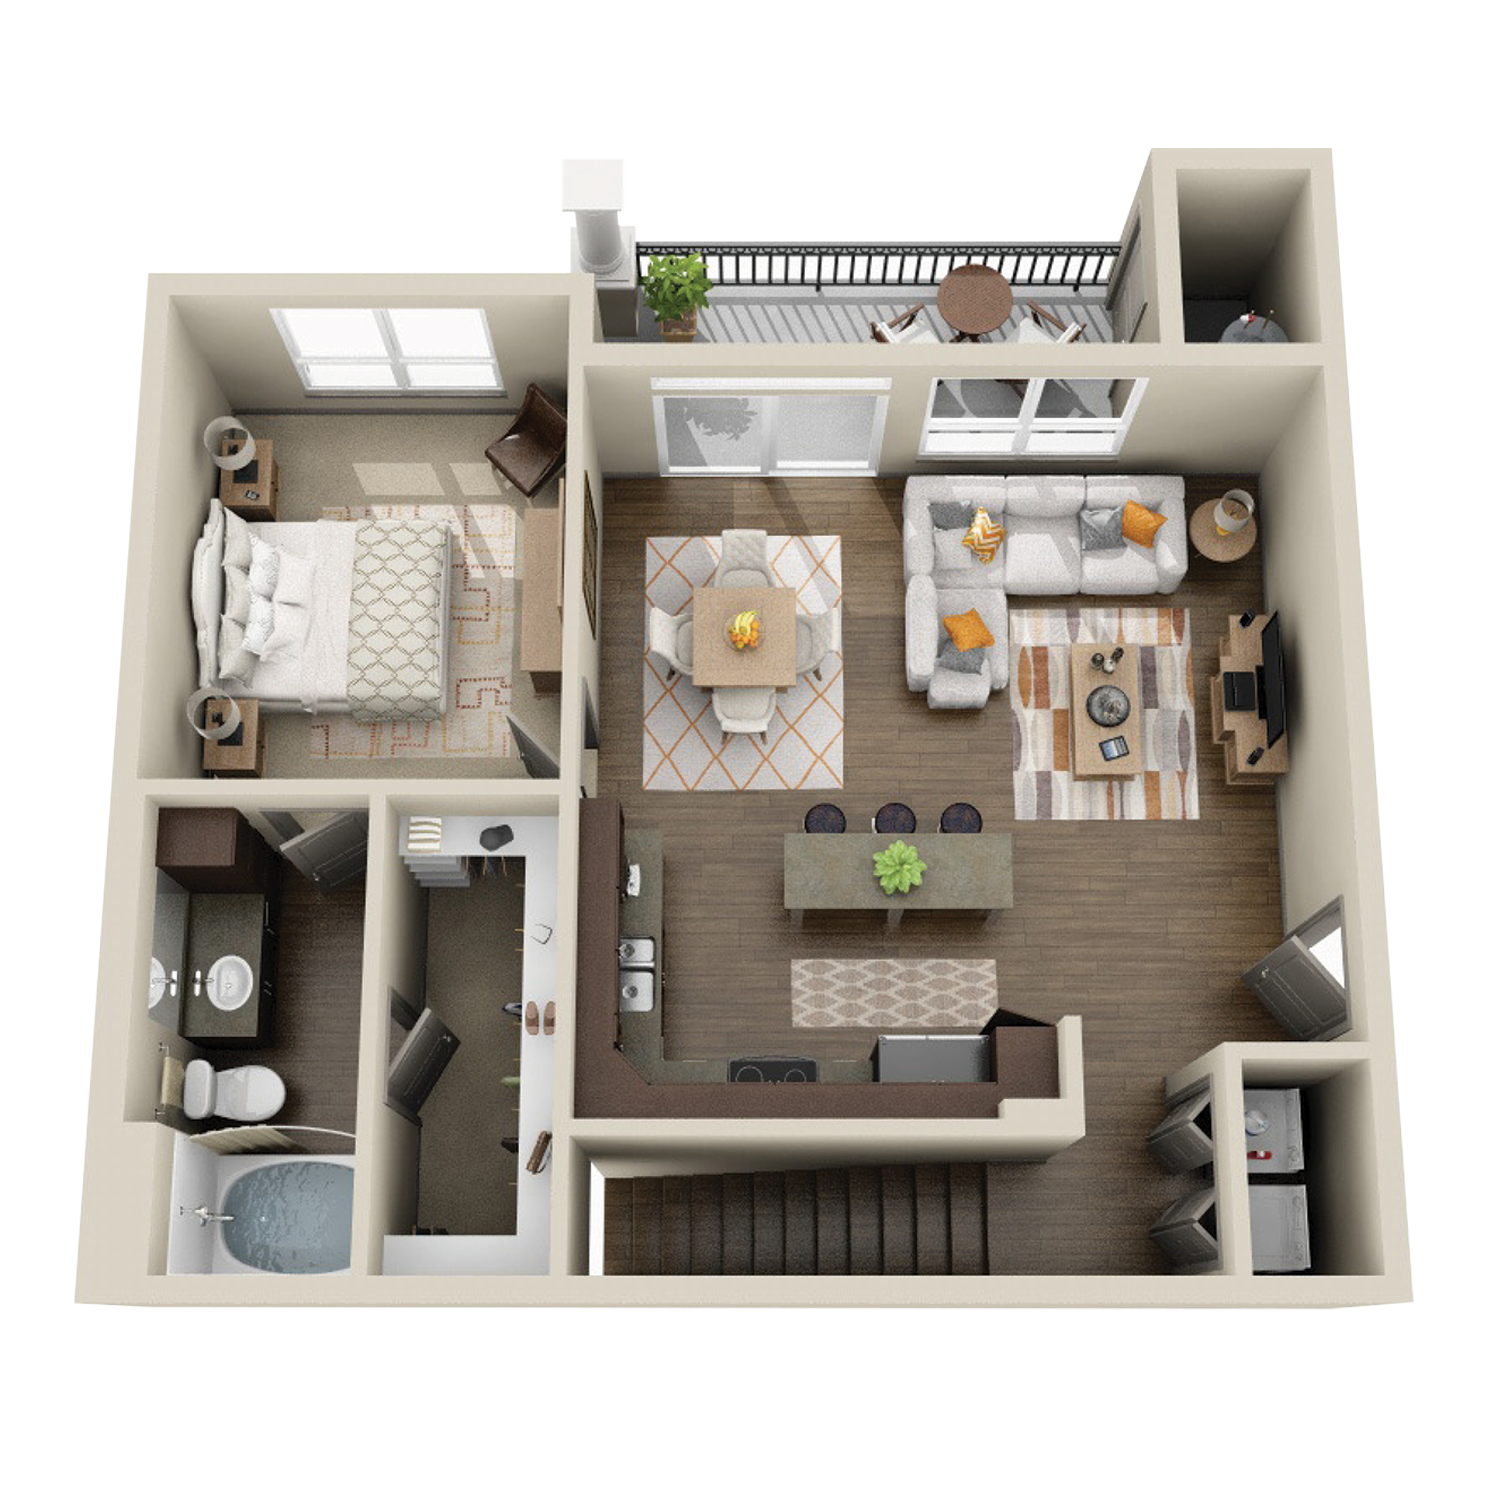 A3B floor plan featuring 1 bed and 1 bath